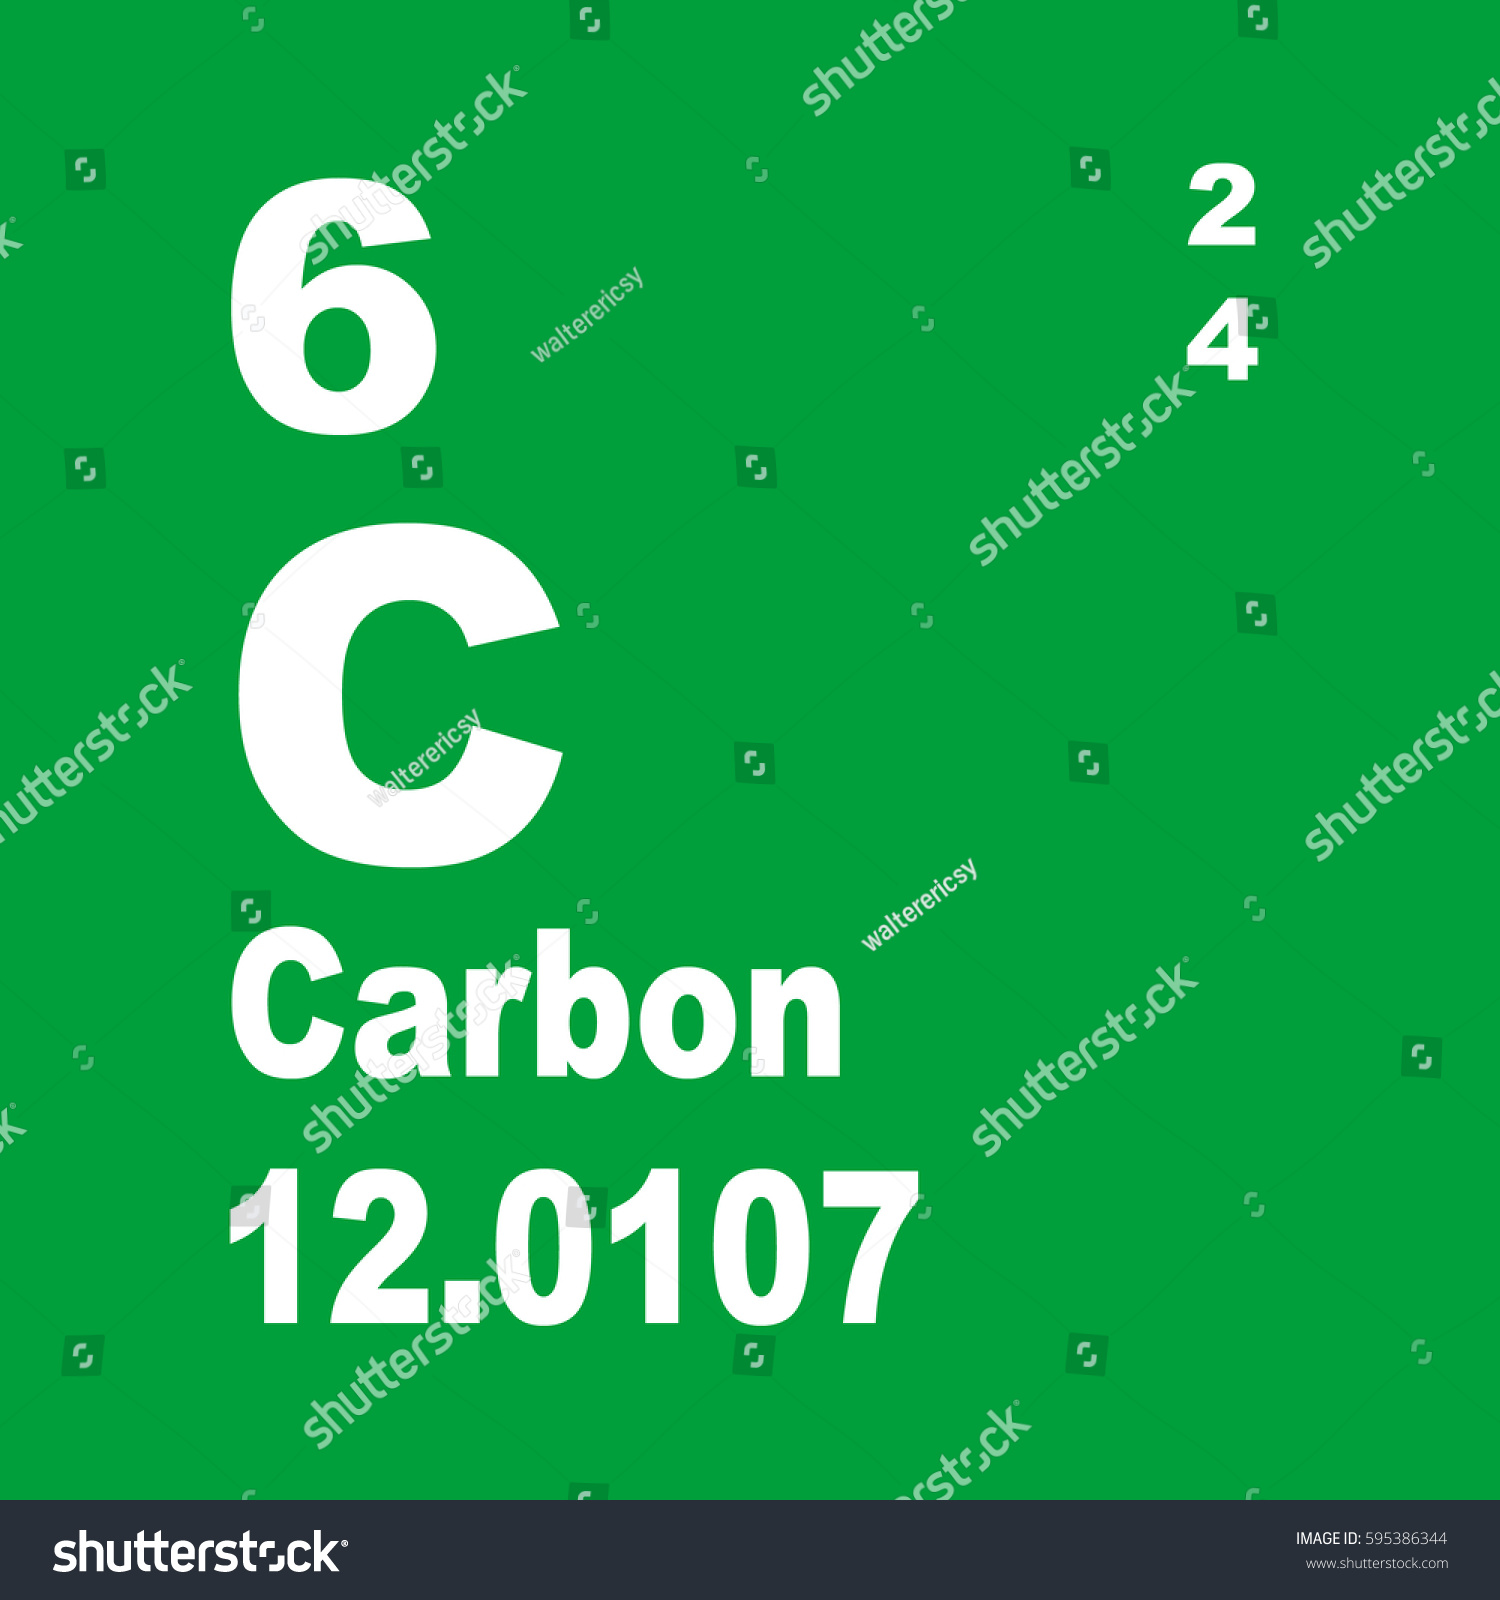 Carbon periodic table elements stock illustration 595386344 carbon periodic table of elements gamestrikefo Gallery